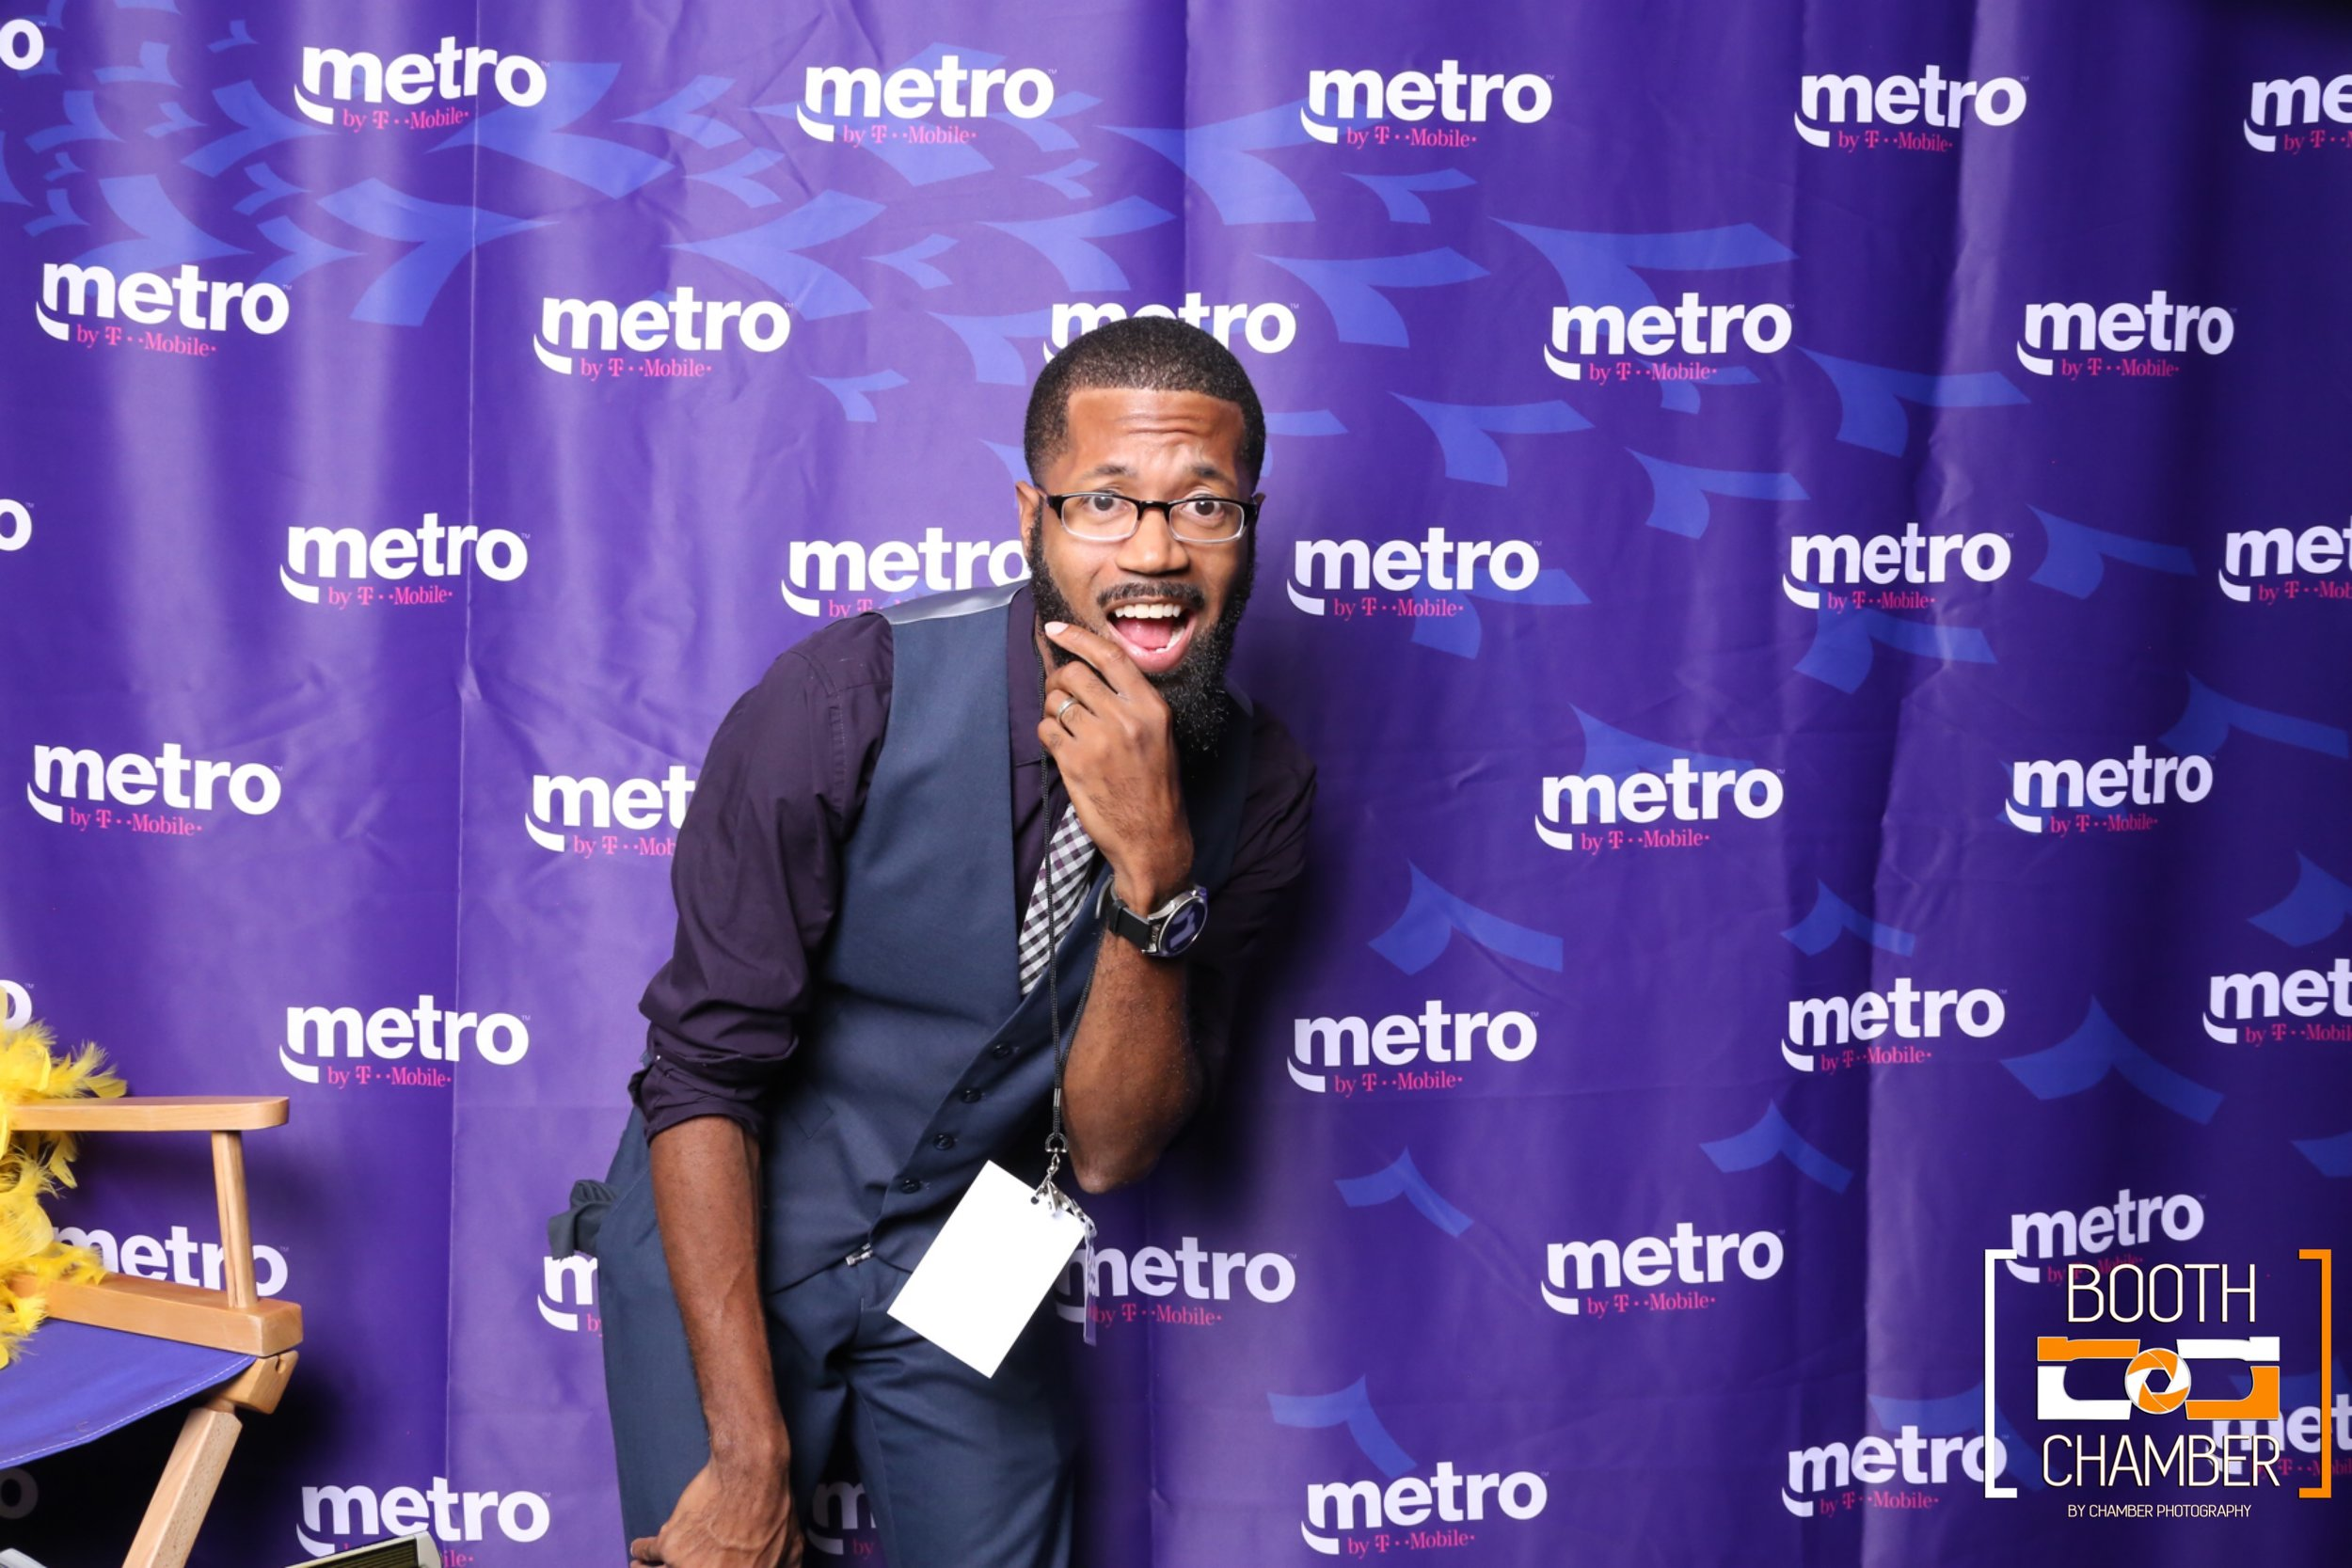 Booth Chamber Photo Booth Beat the Runway Antoine Hart Orlando _8 (7).jpeg